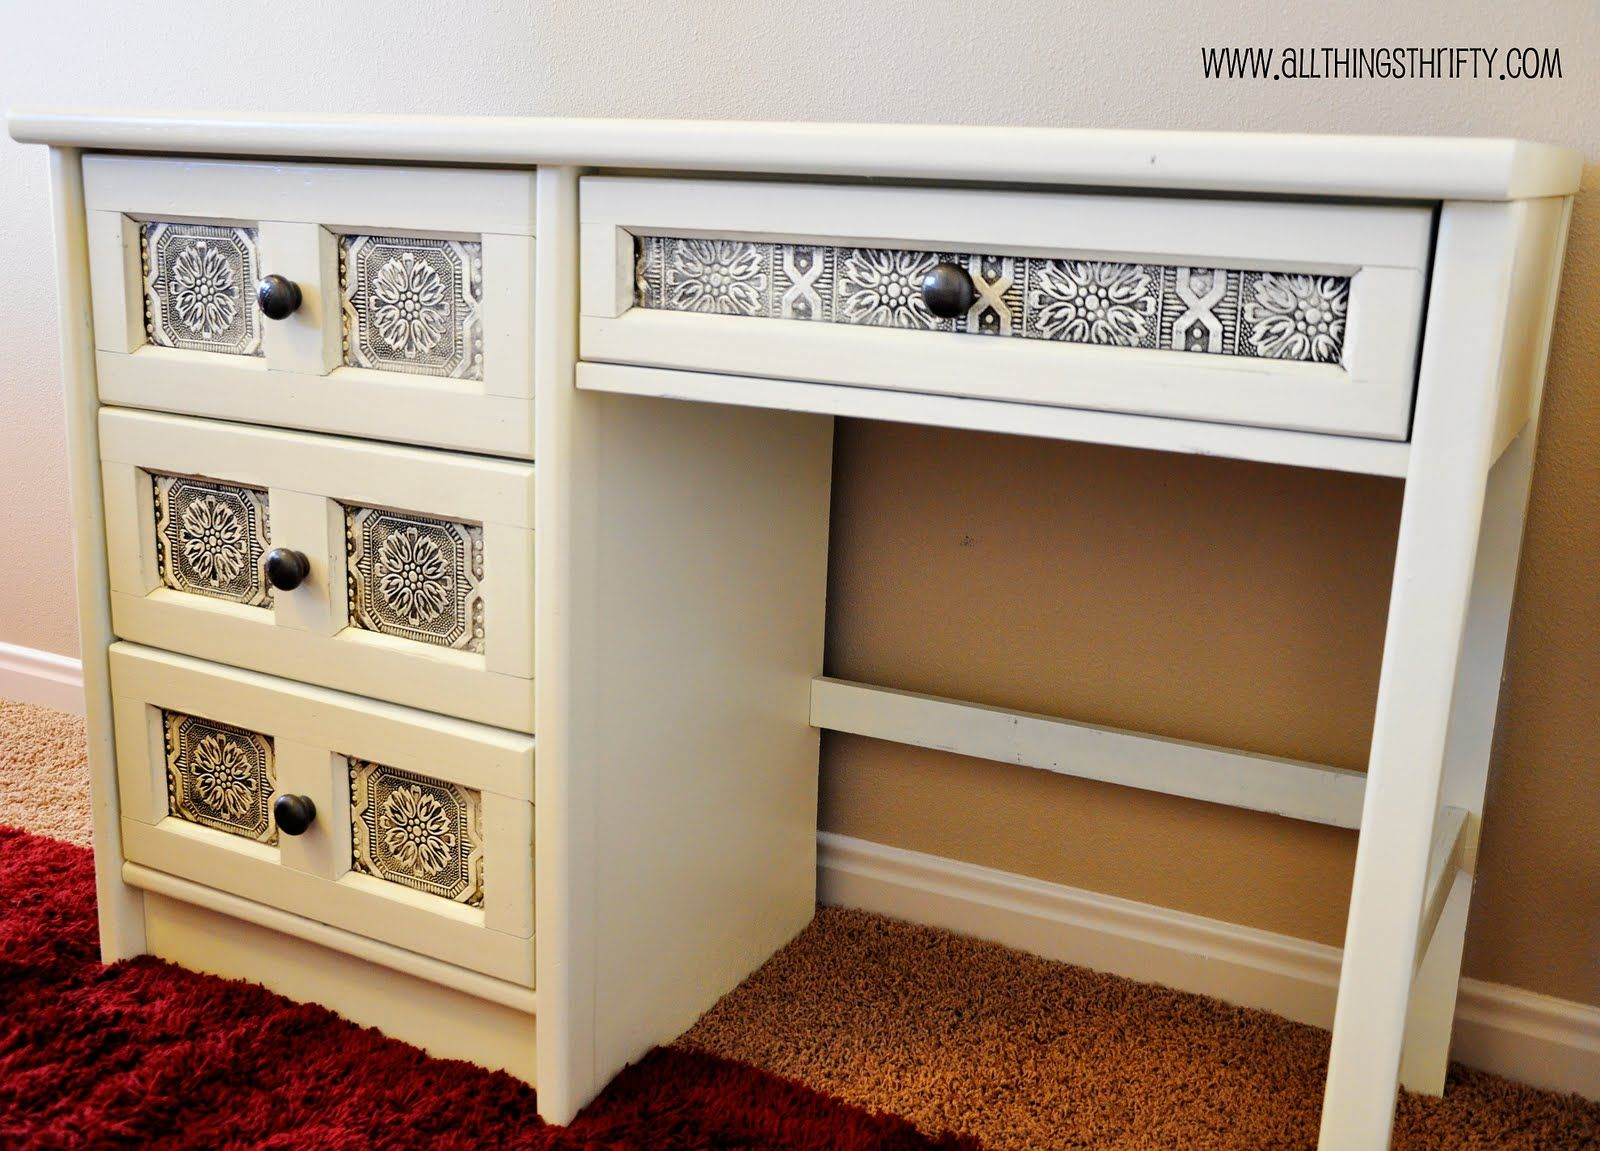 redoing furniture ideas. all things thrifty home accessories and decor: refinishing furniture is easy! redoing ideas h